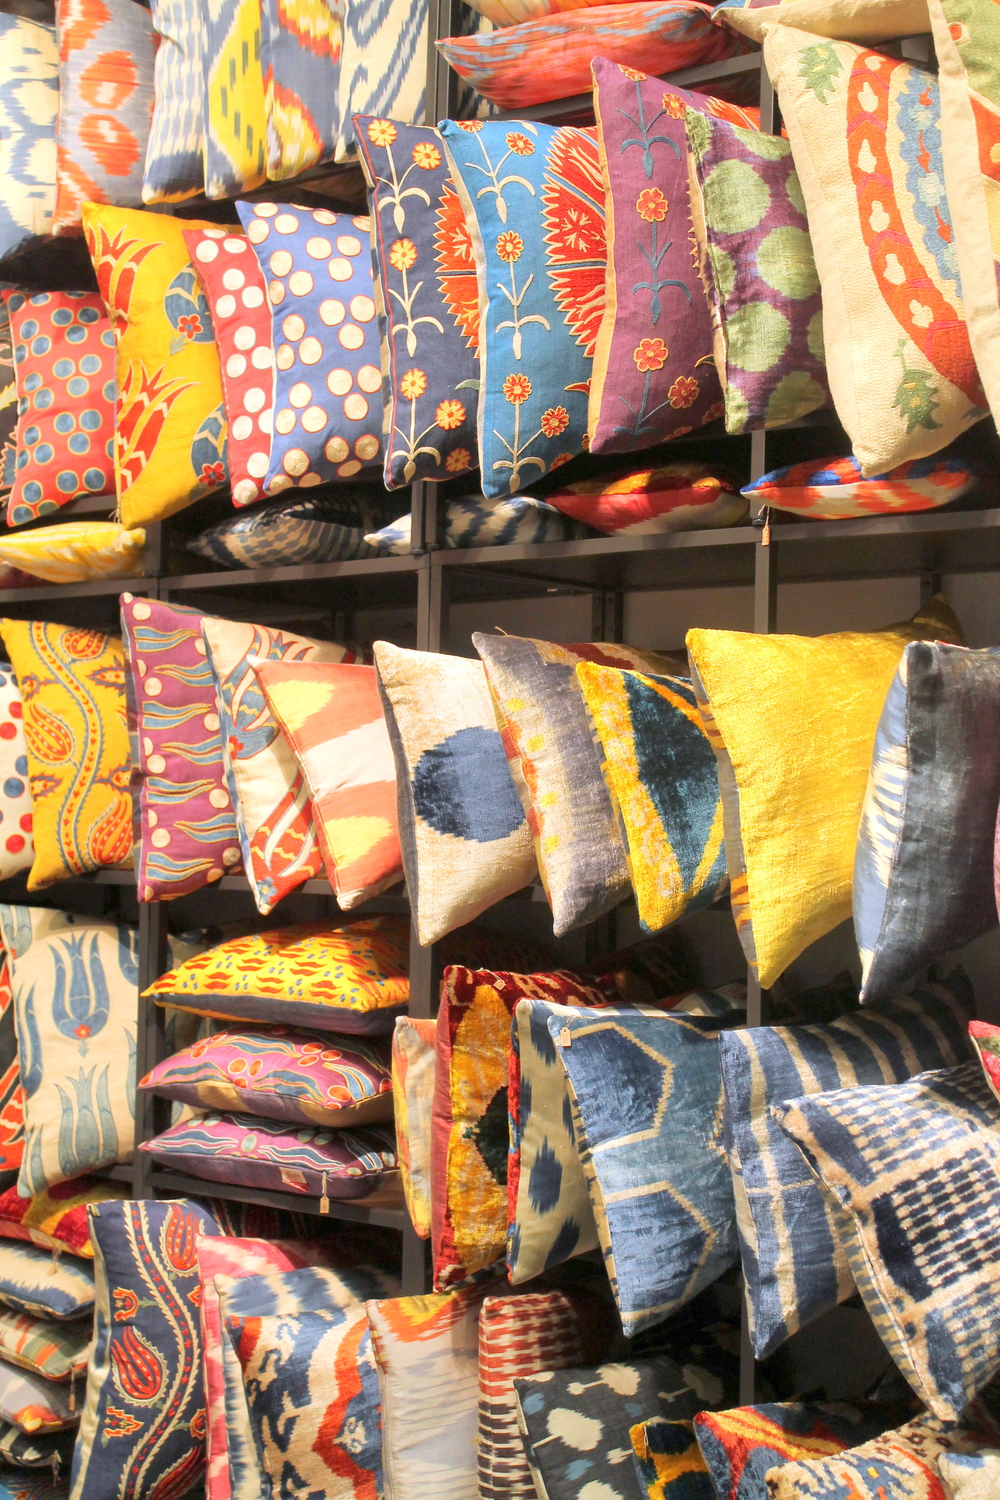 Mehmet Cetinkaya Gallery brings us beautiful fabrics from Istanbul. For more visit their  website.